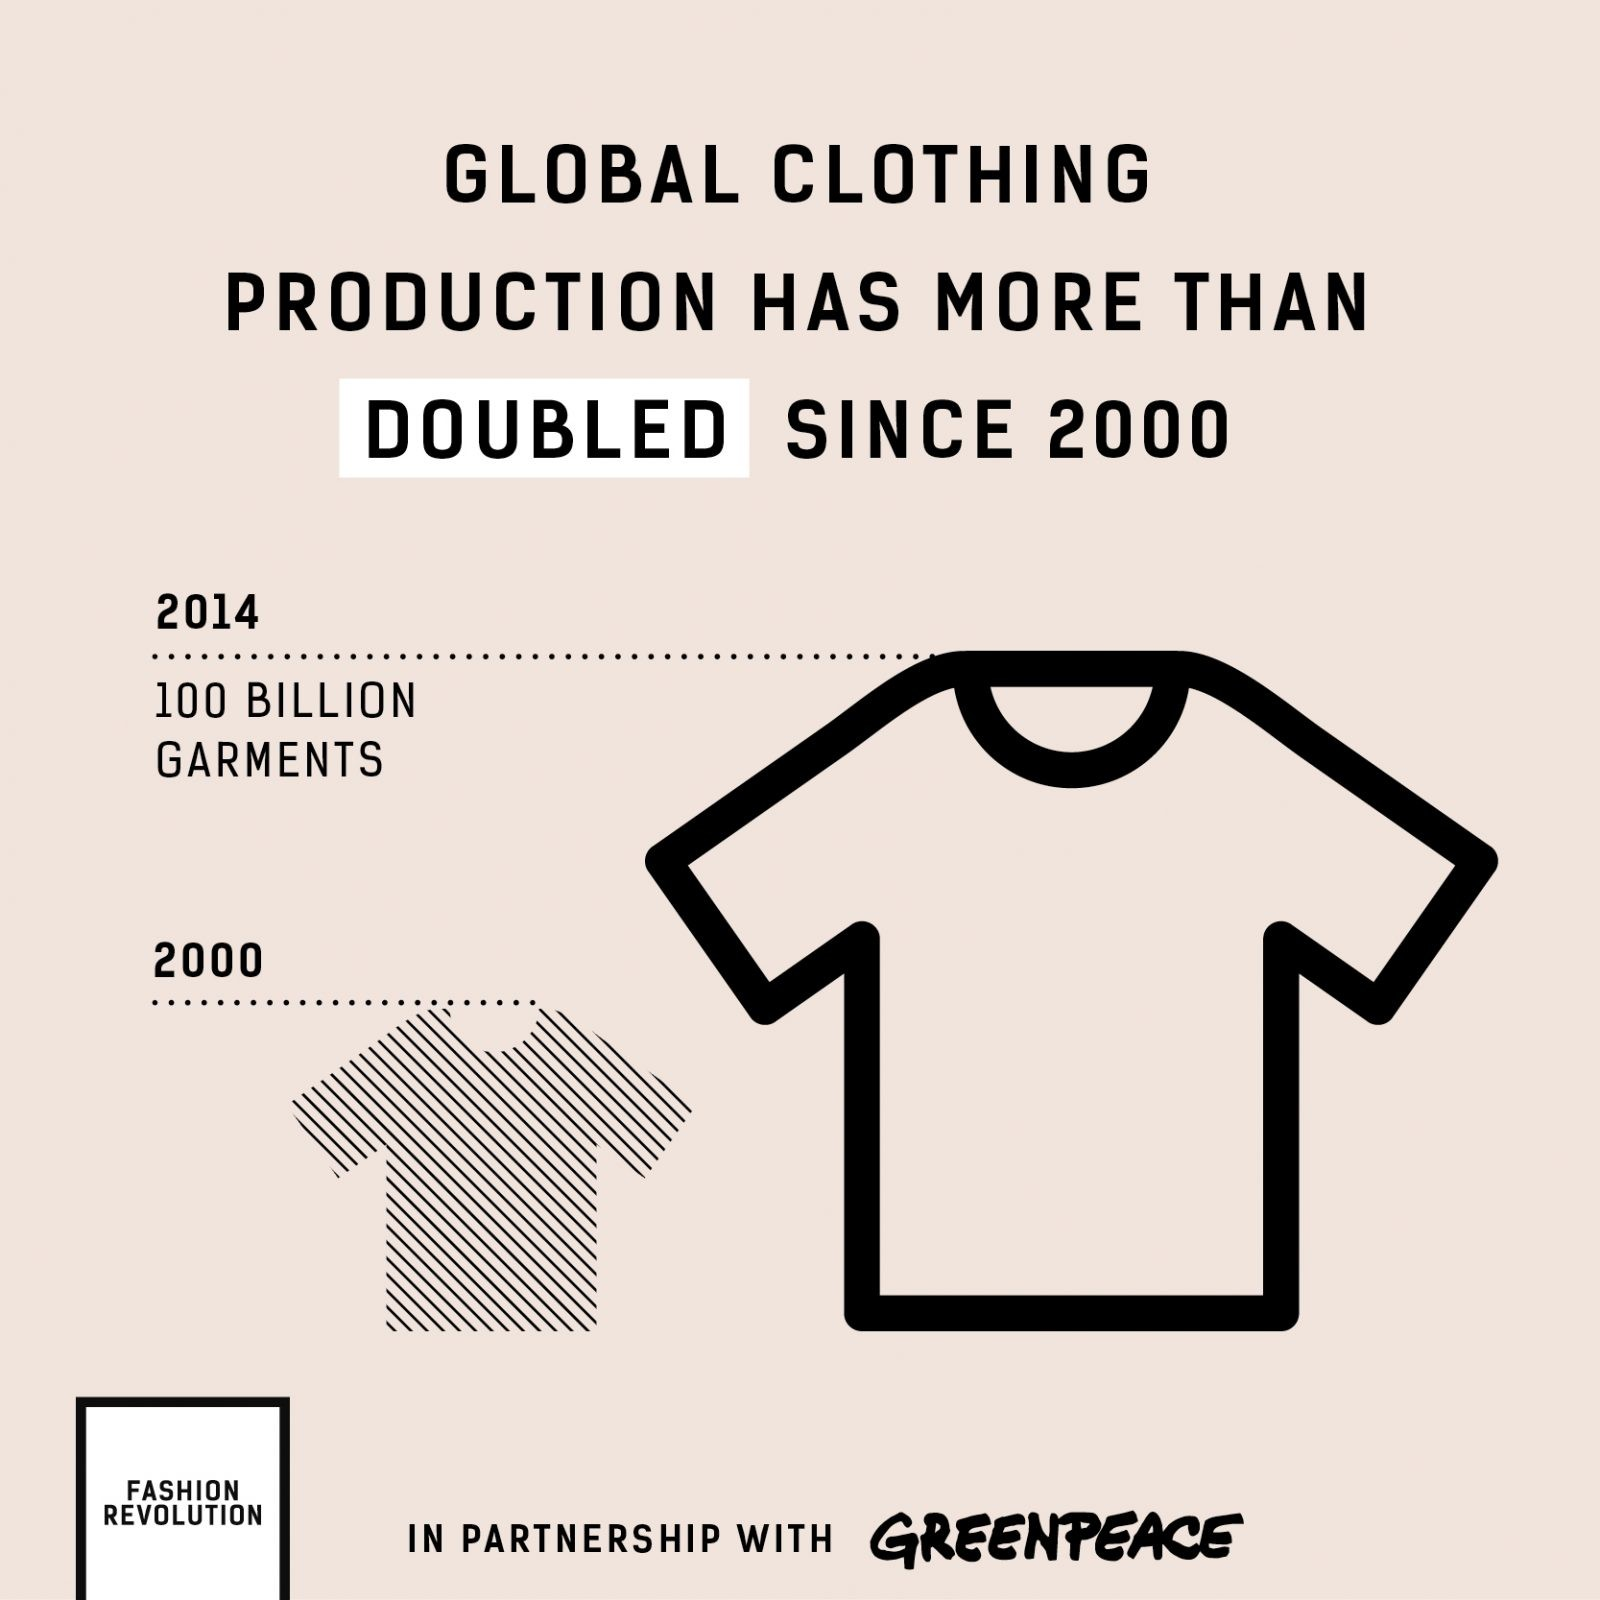 Fashion Revolution and Greenpeace infographic stating clothing production has more than doubled since 2000